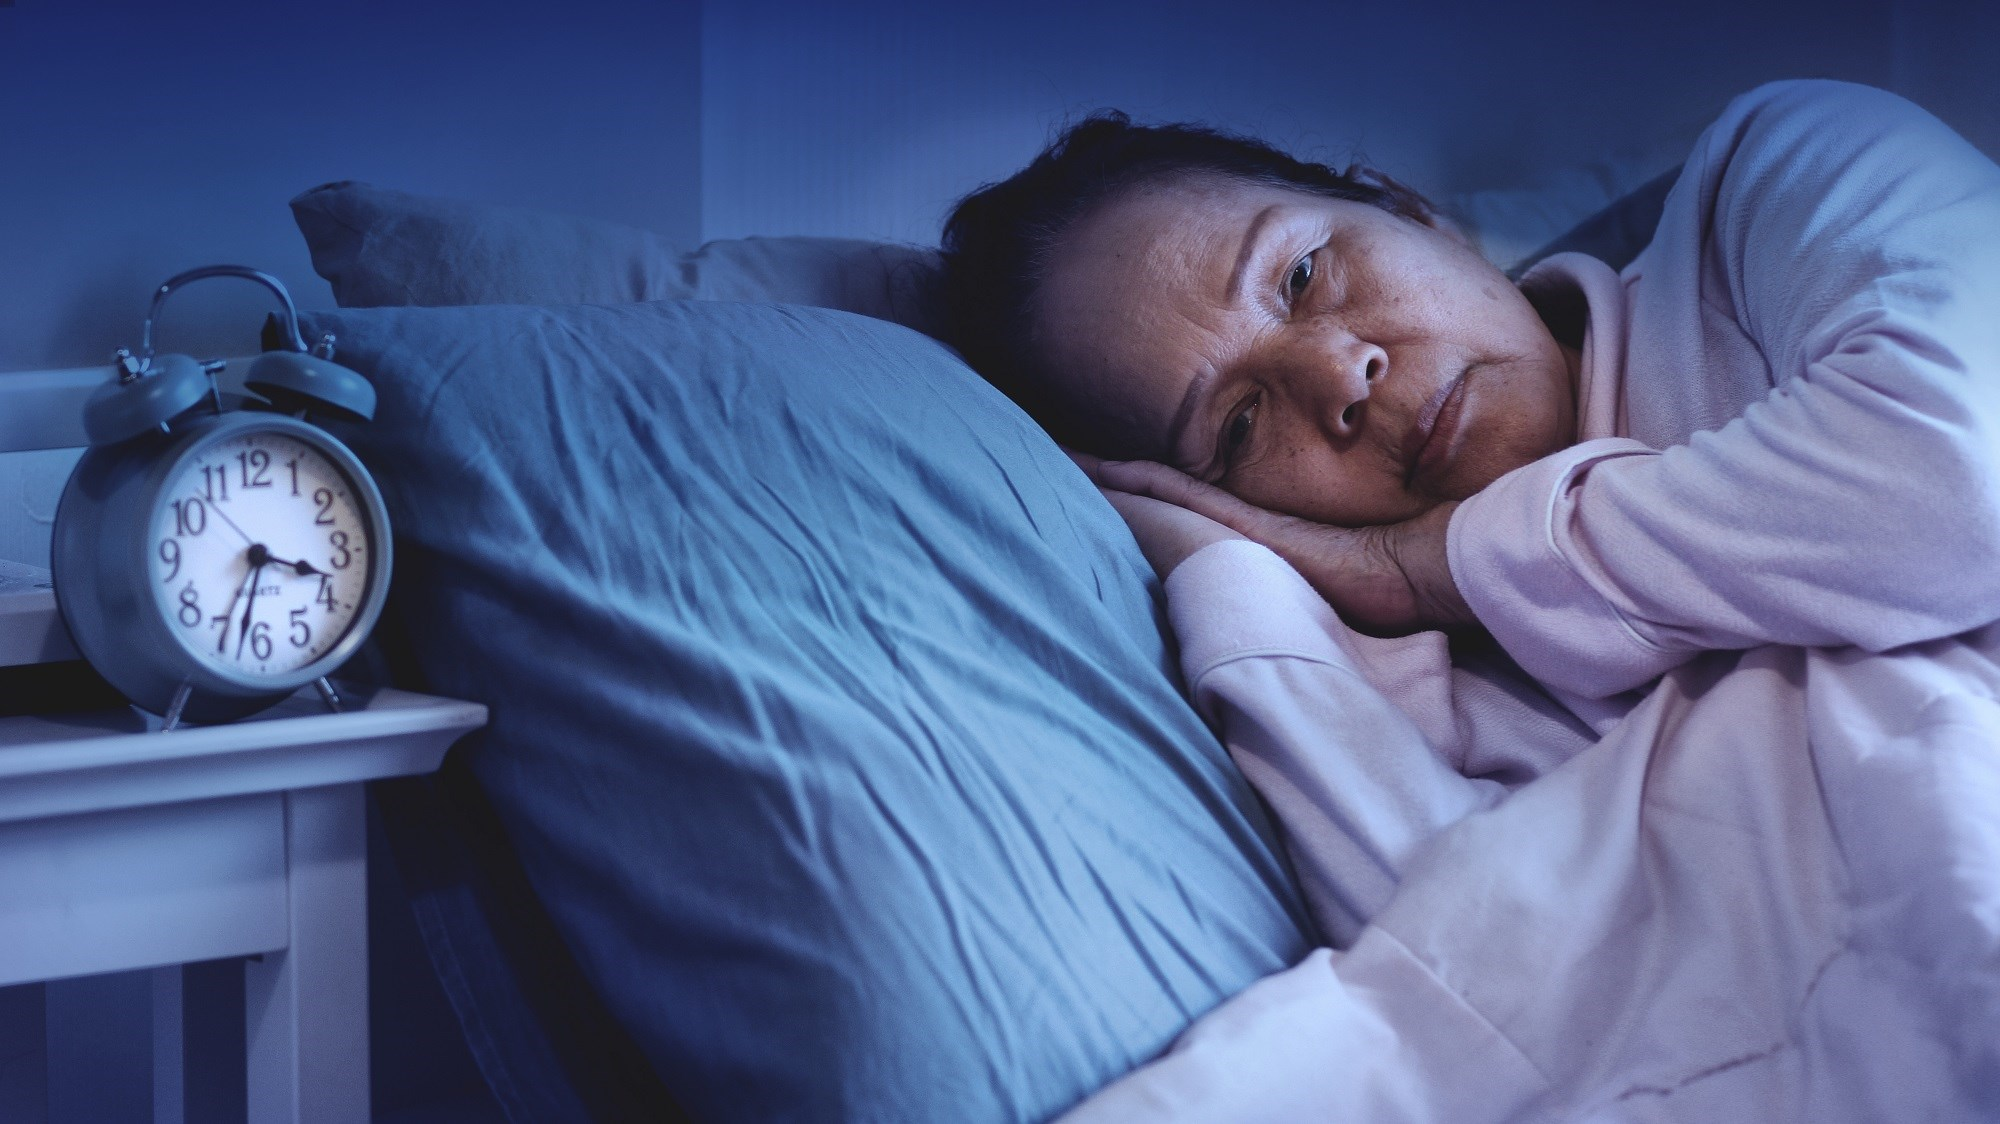 Adult patients with symptoms of insomnia and fibromyalgia were asked to complete assessments of insomnia symptoms, pain, and use of medication for sleep and pain.